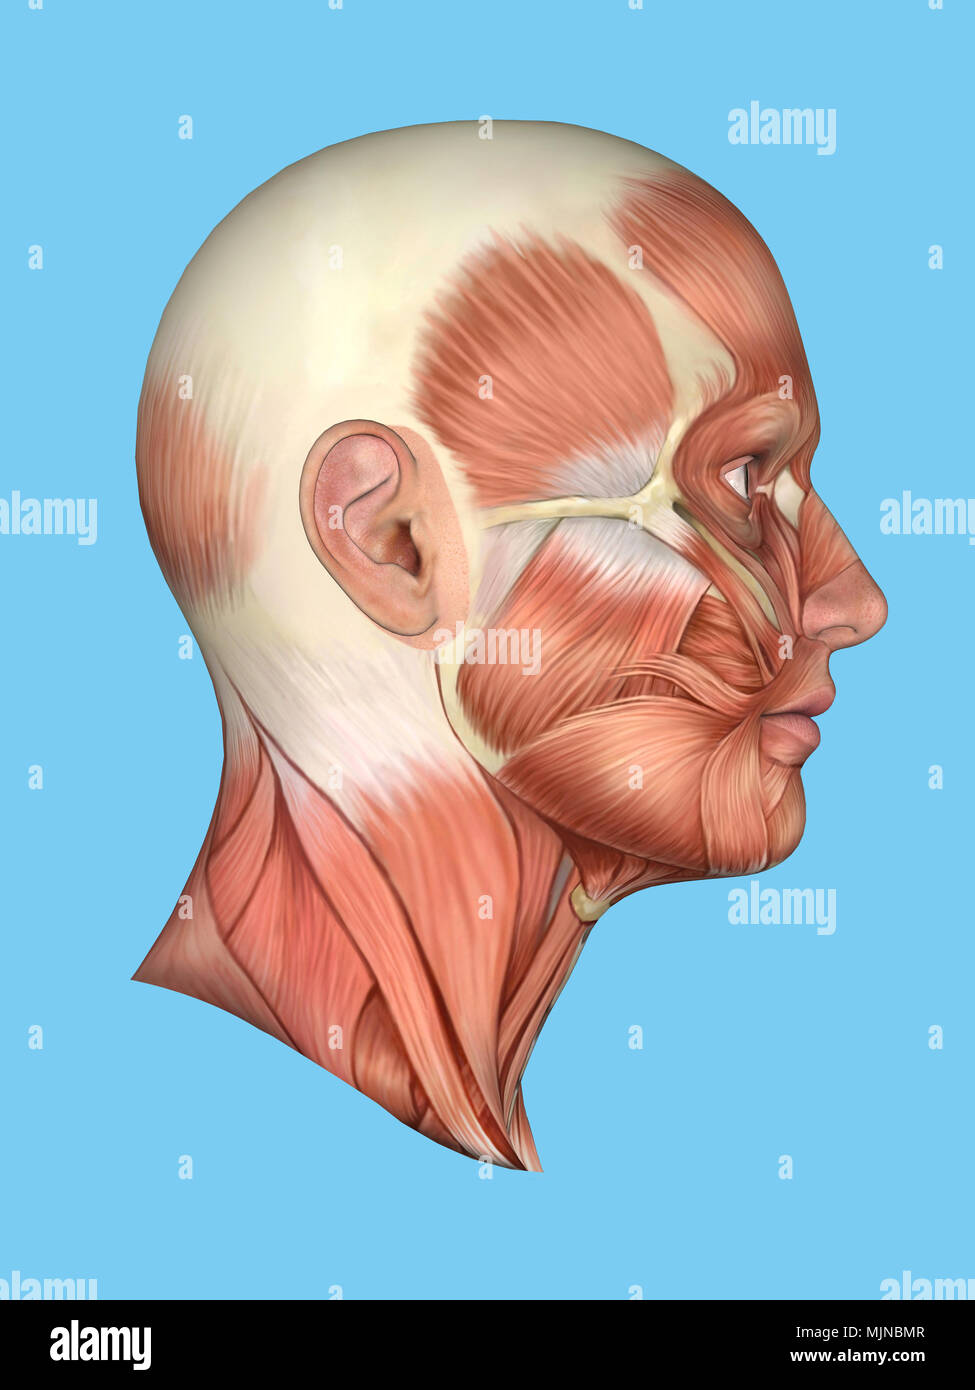 medium resolution of anatomy side view of face stock photo 183637687 alamy diagram of side of face